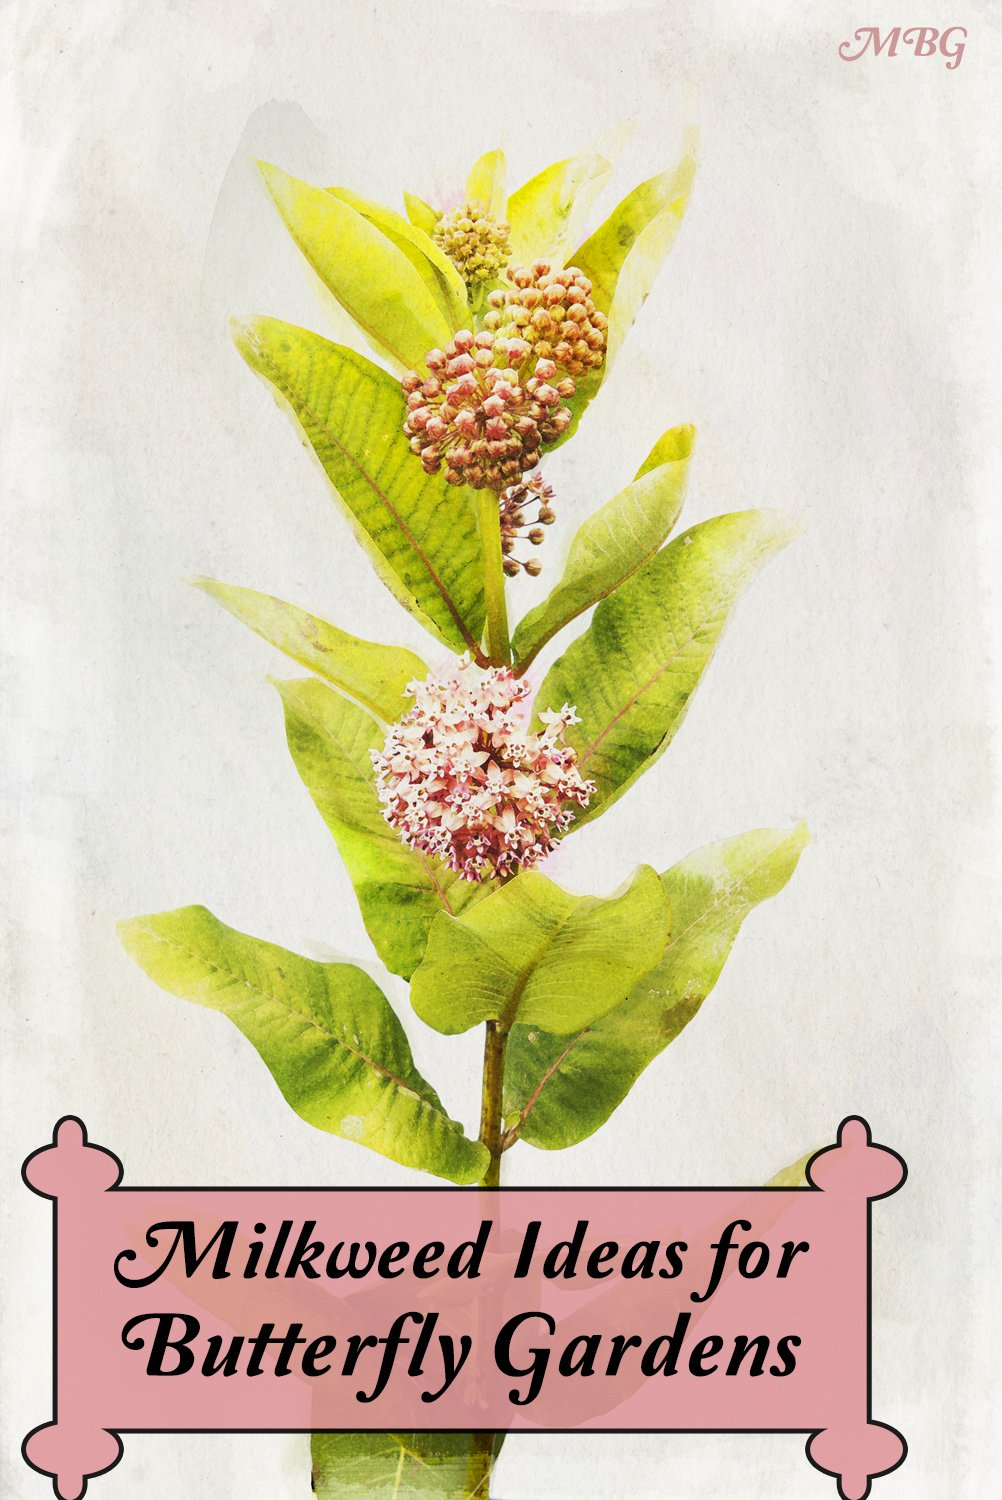 25+ Milkweed Plant Ideas for Supporting Monarch Butterflies, Caterpillars, and other Beneficial Pollinators in your Butterfly Garden. Discover milkweed options for your region and learn where you can find milkweed seeds and plants.